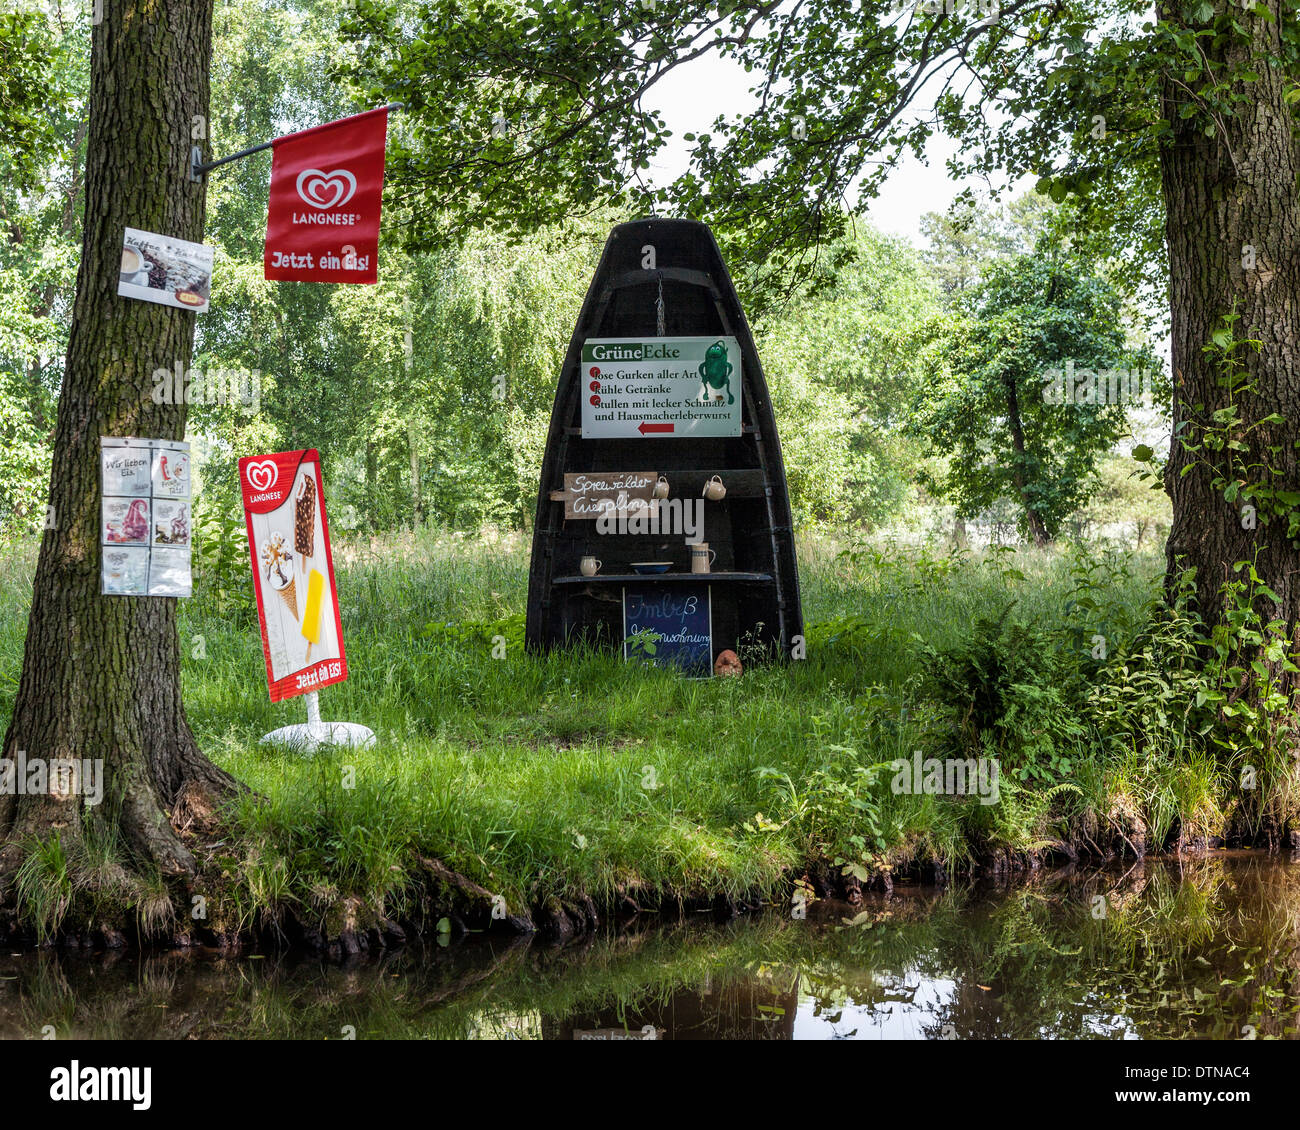 Refreshment stop and cafe on the banks of an irrigation canal in the Spreewald, UNESCO Biosphere reserve - Stock Image